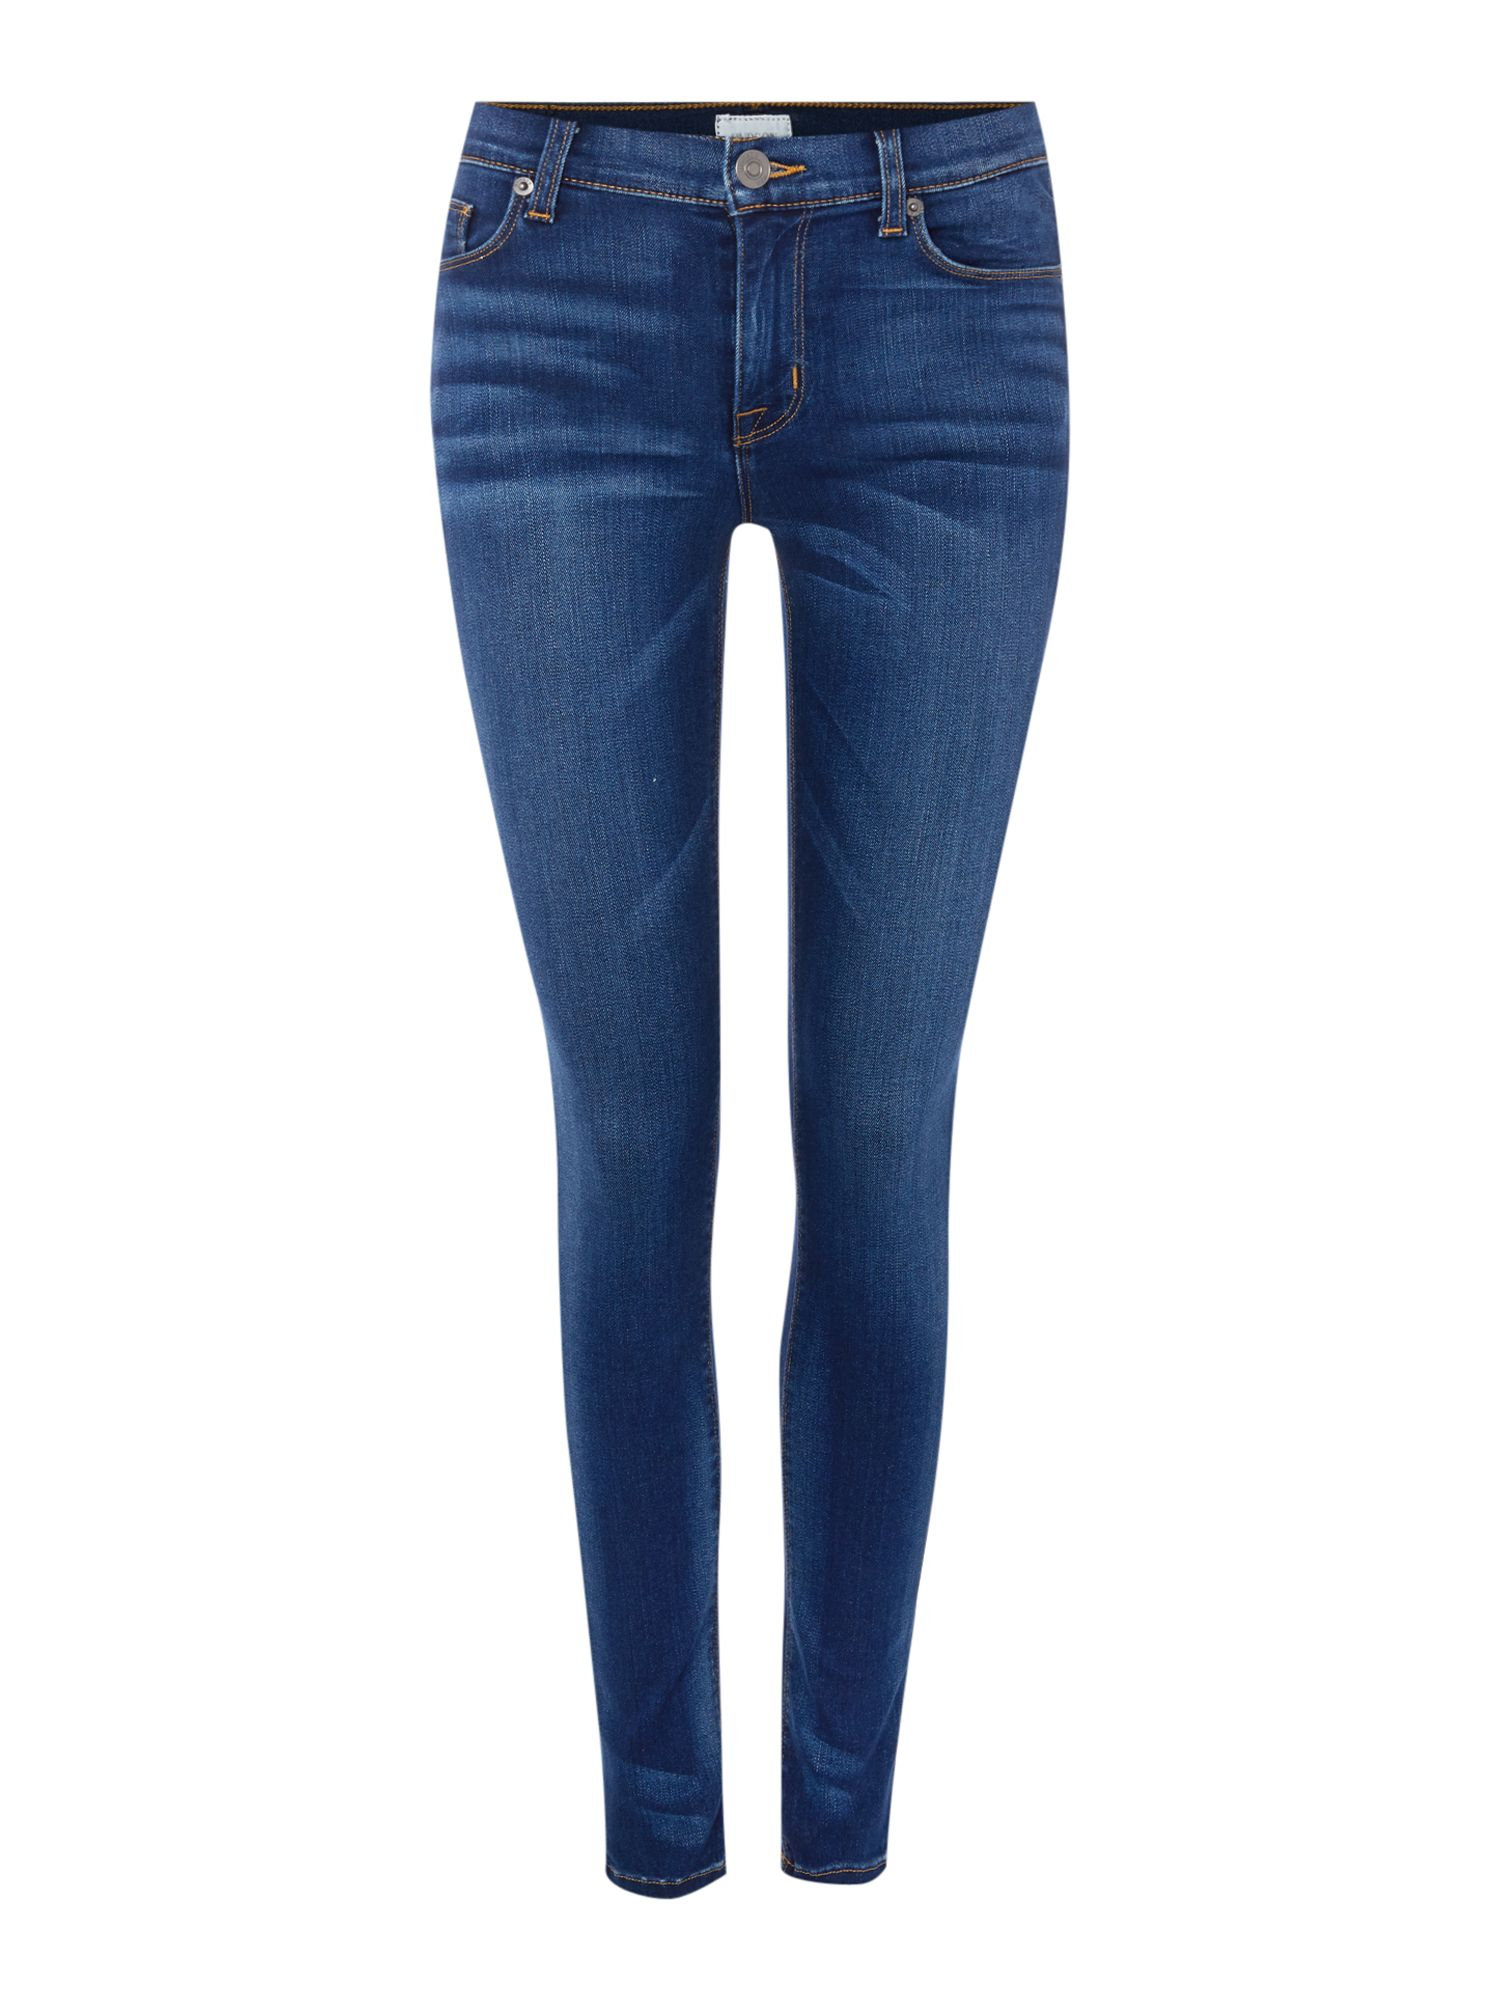 Hudson Jeans Nico mid rise super skinny jean in revelation Denim Mid Wash